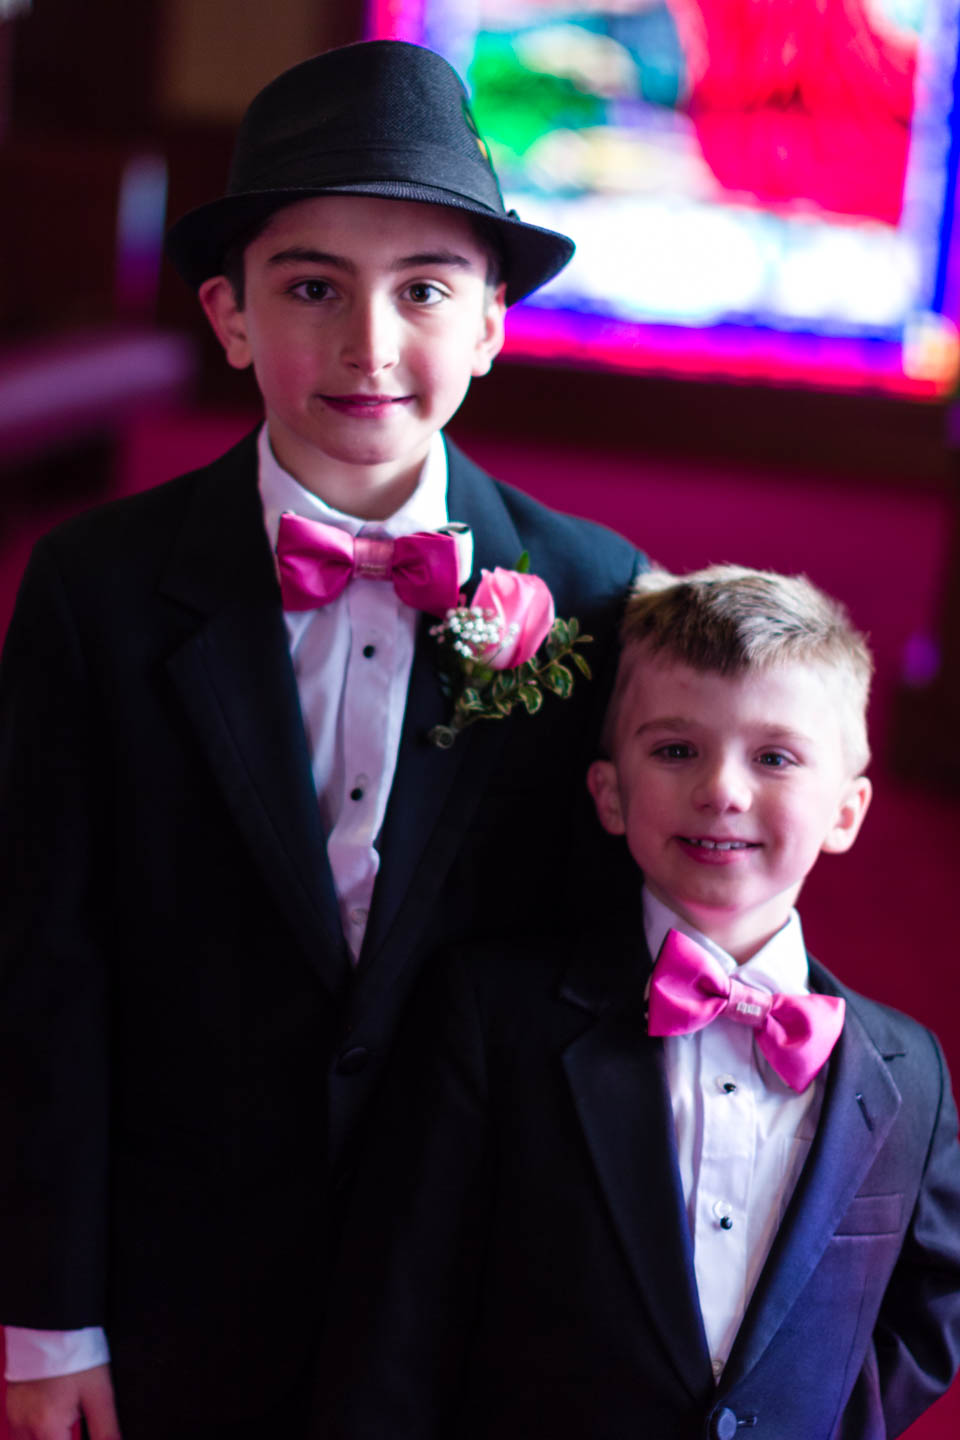 Kids ready for their dad's wedding